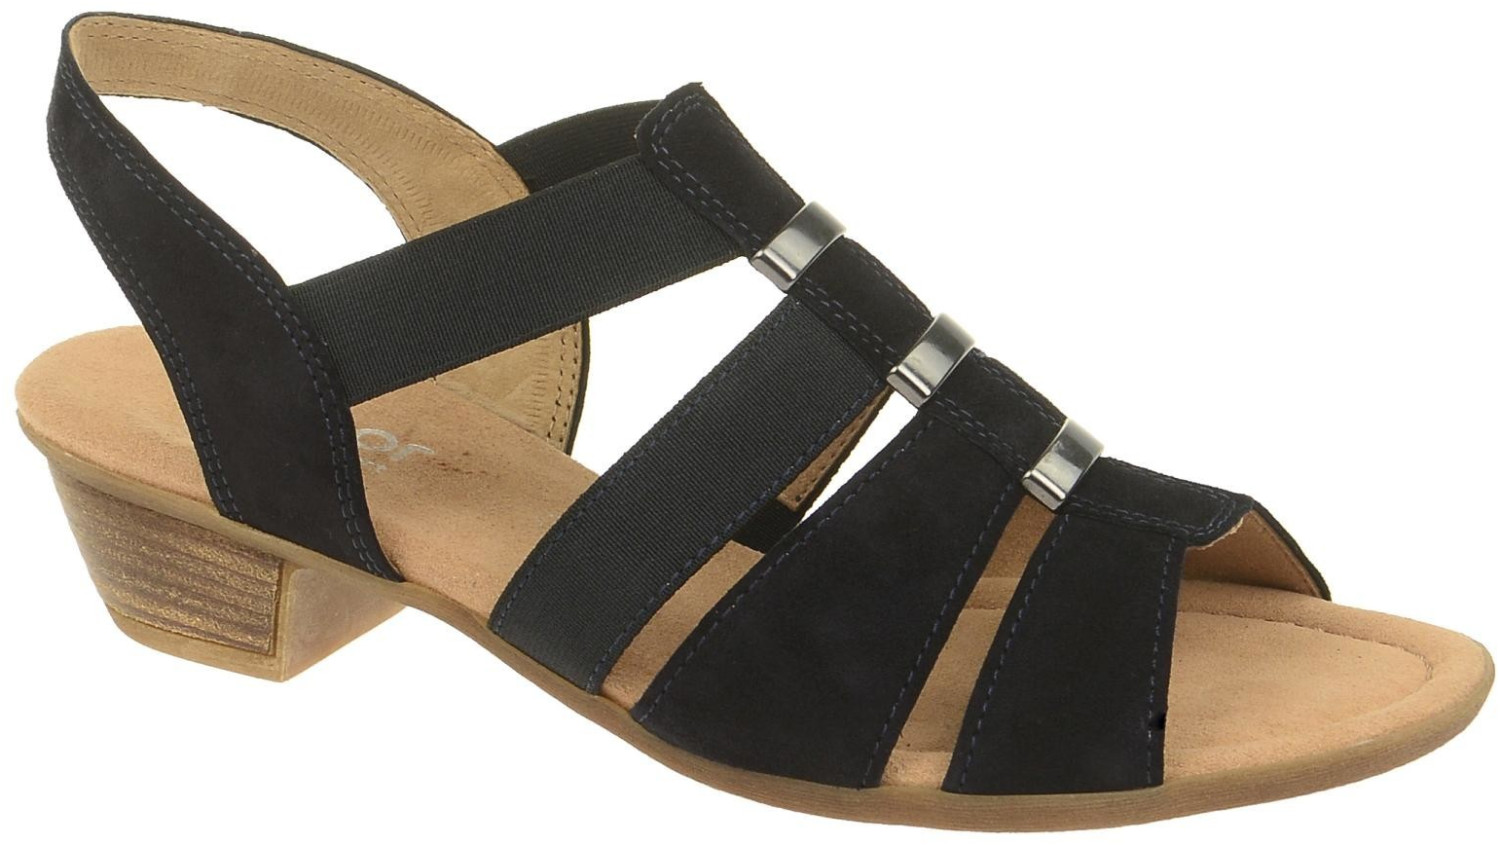 Image of Gabor Strappy Sandals (22.472)